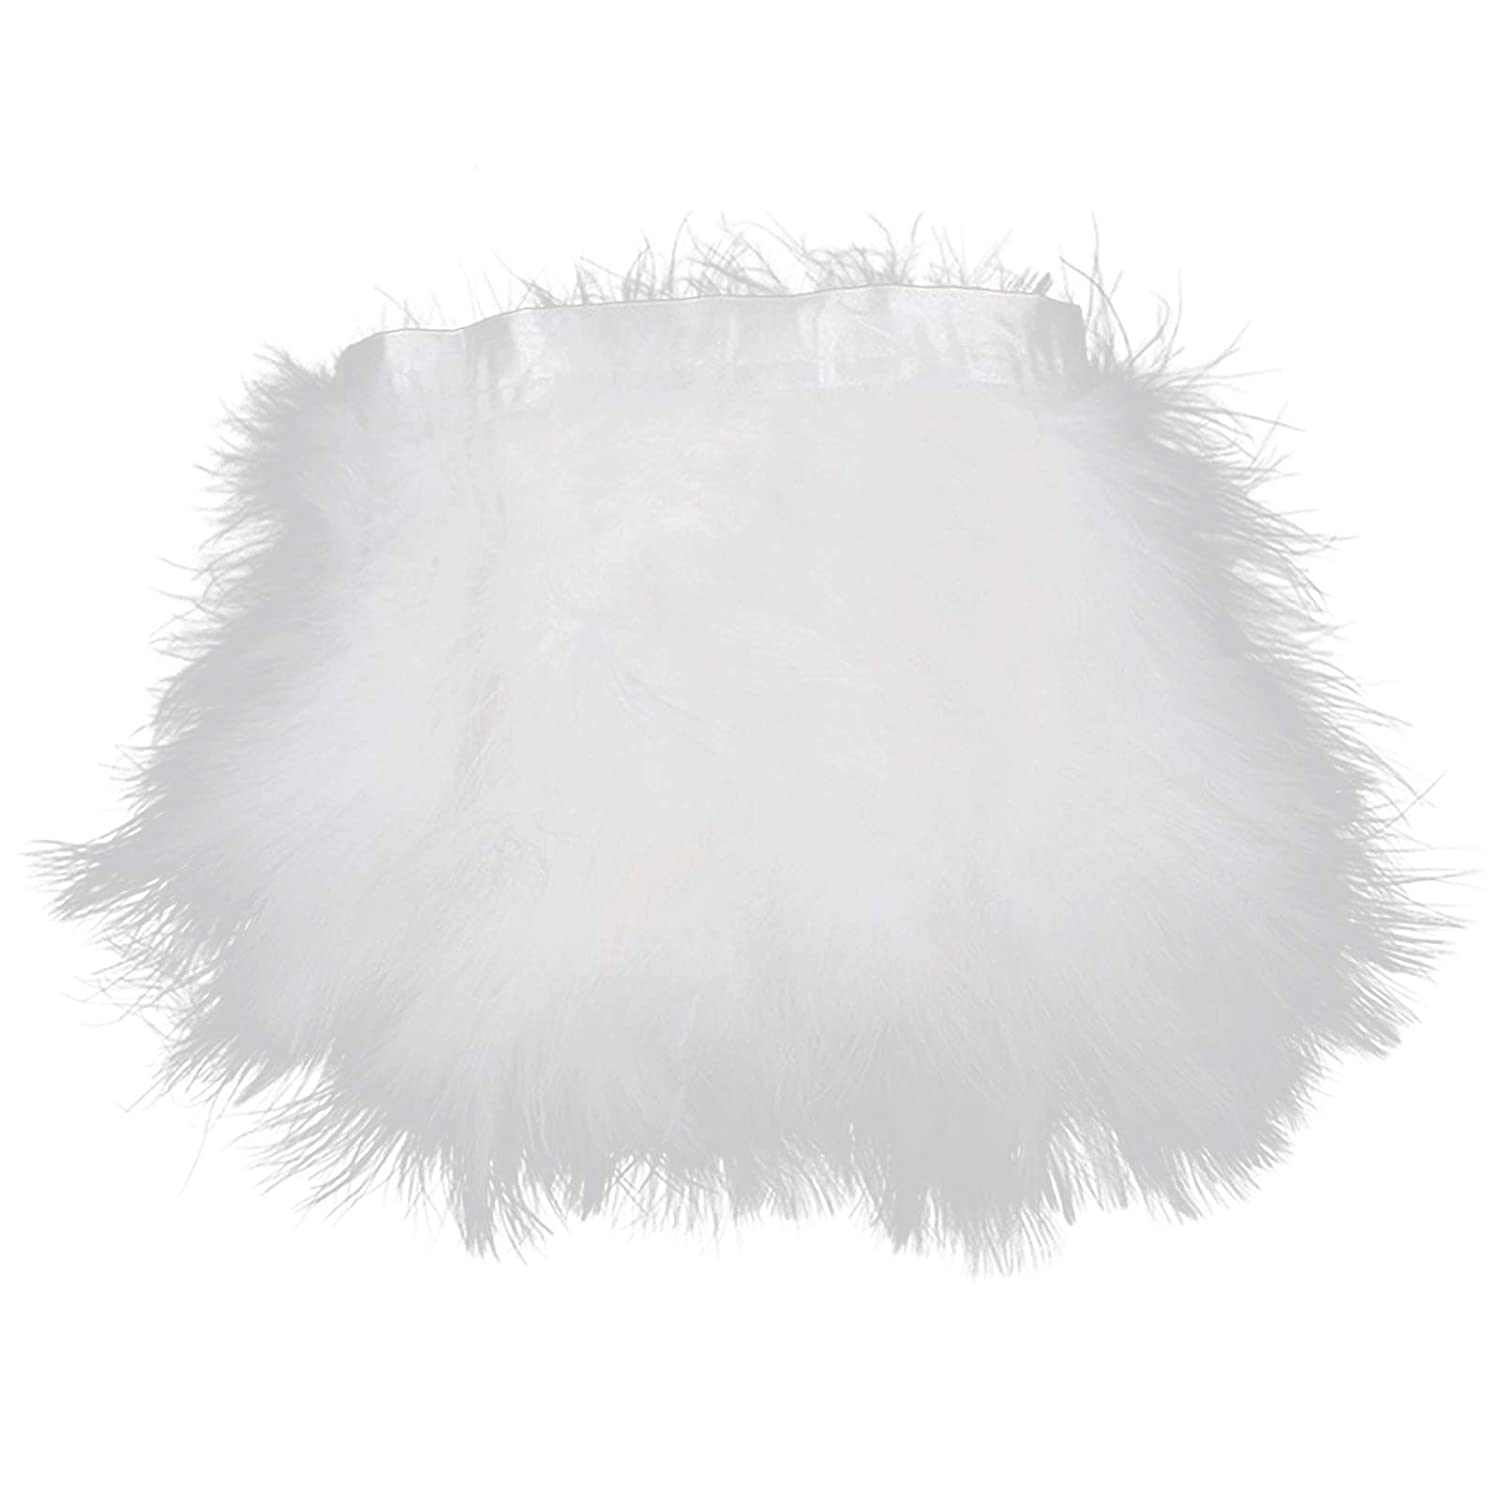 Purple AWAYTR Turkey Marabou Hackle Fluffy Feather Fringe Trim Craft 6-8 in Width Pack of 2 Yards